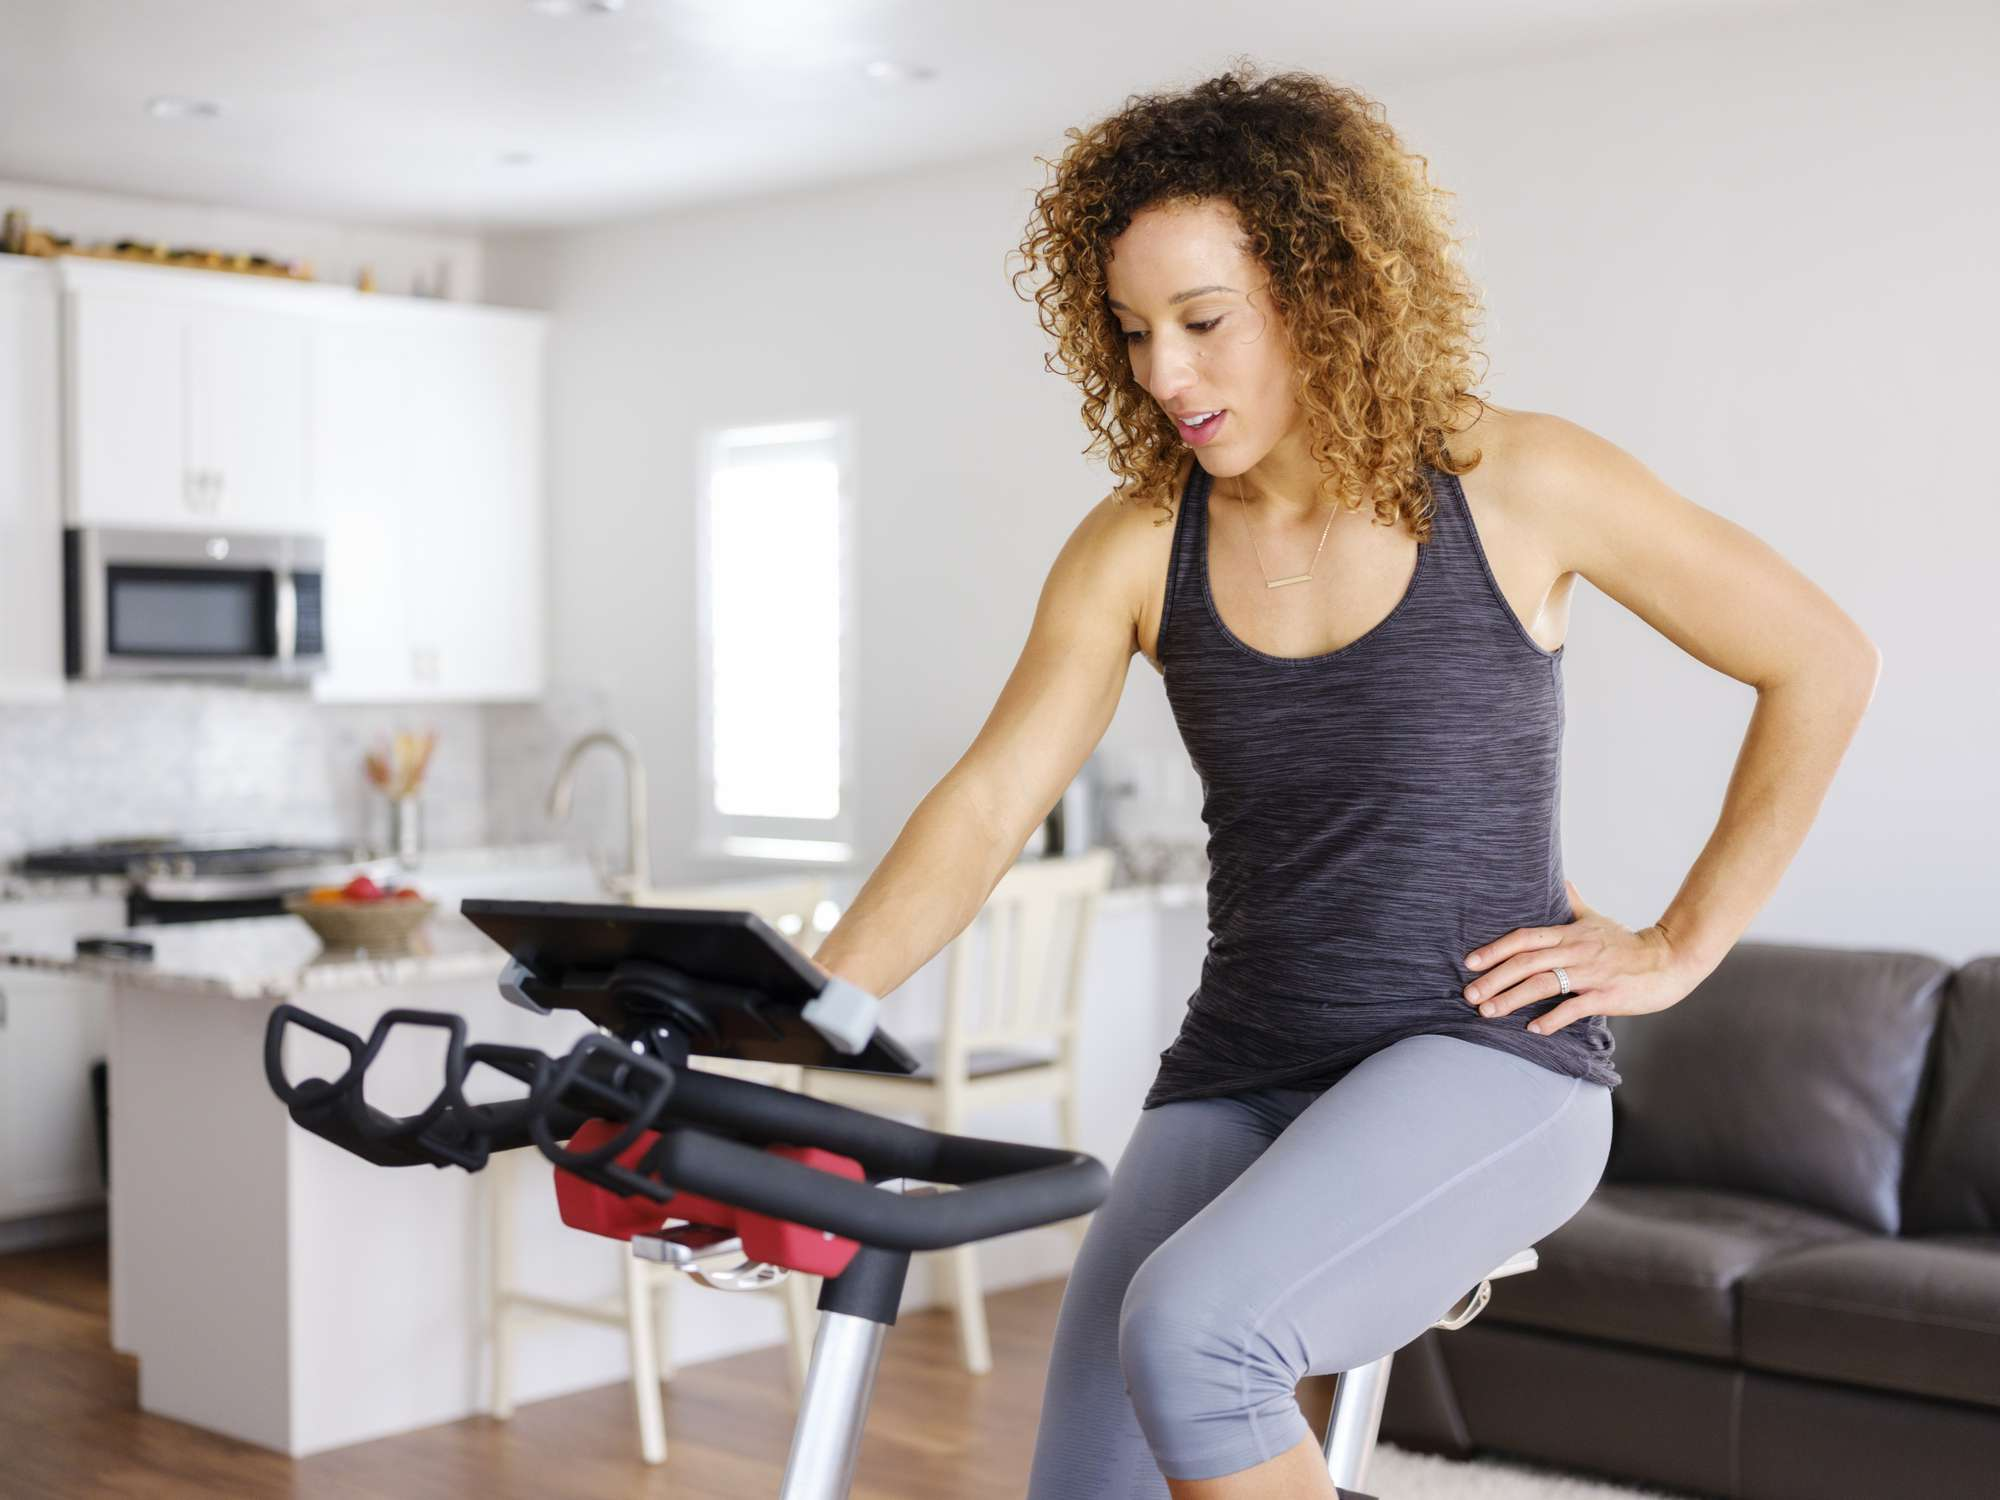 A woman on a stationary workout bike in her own home